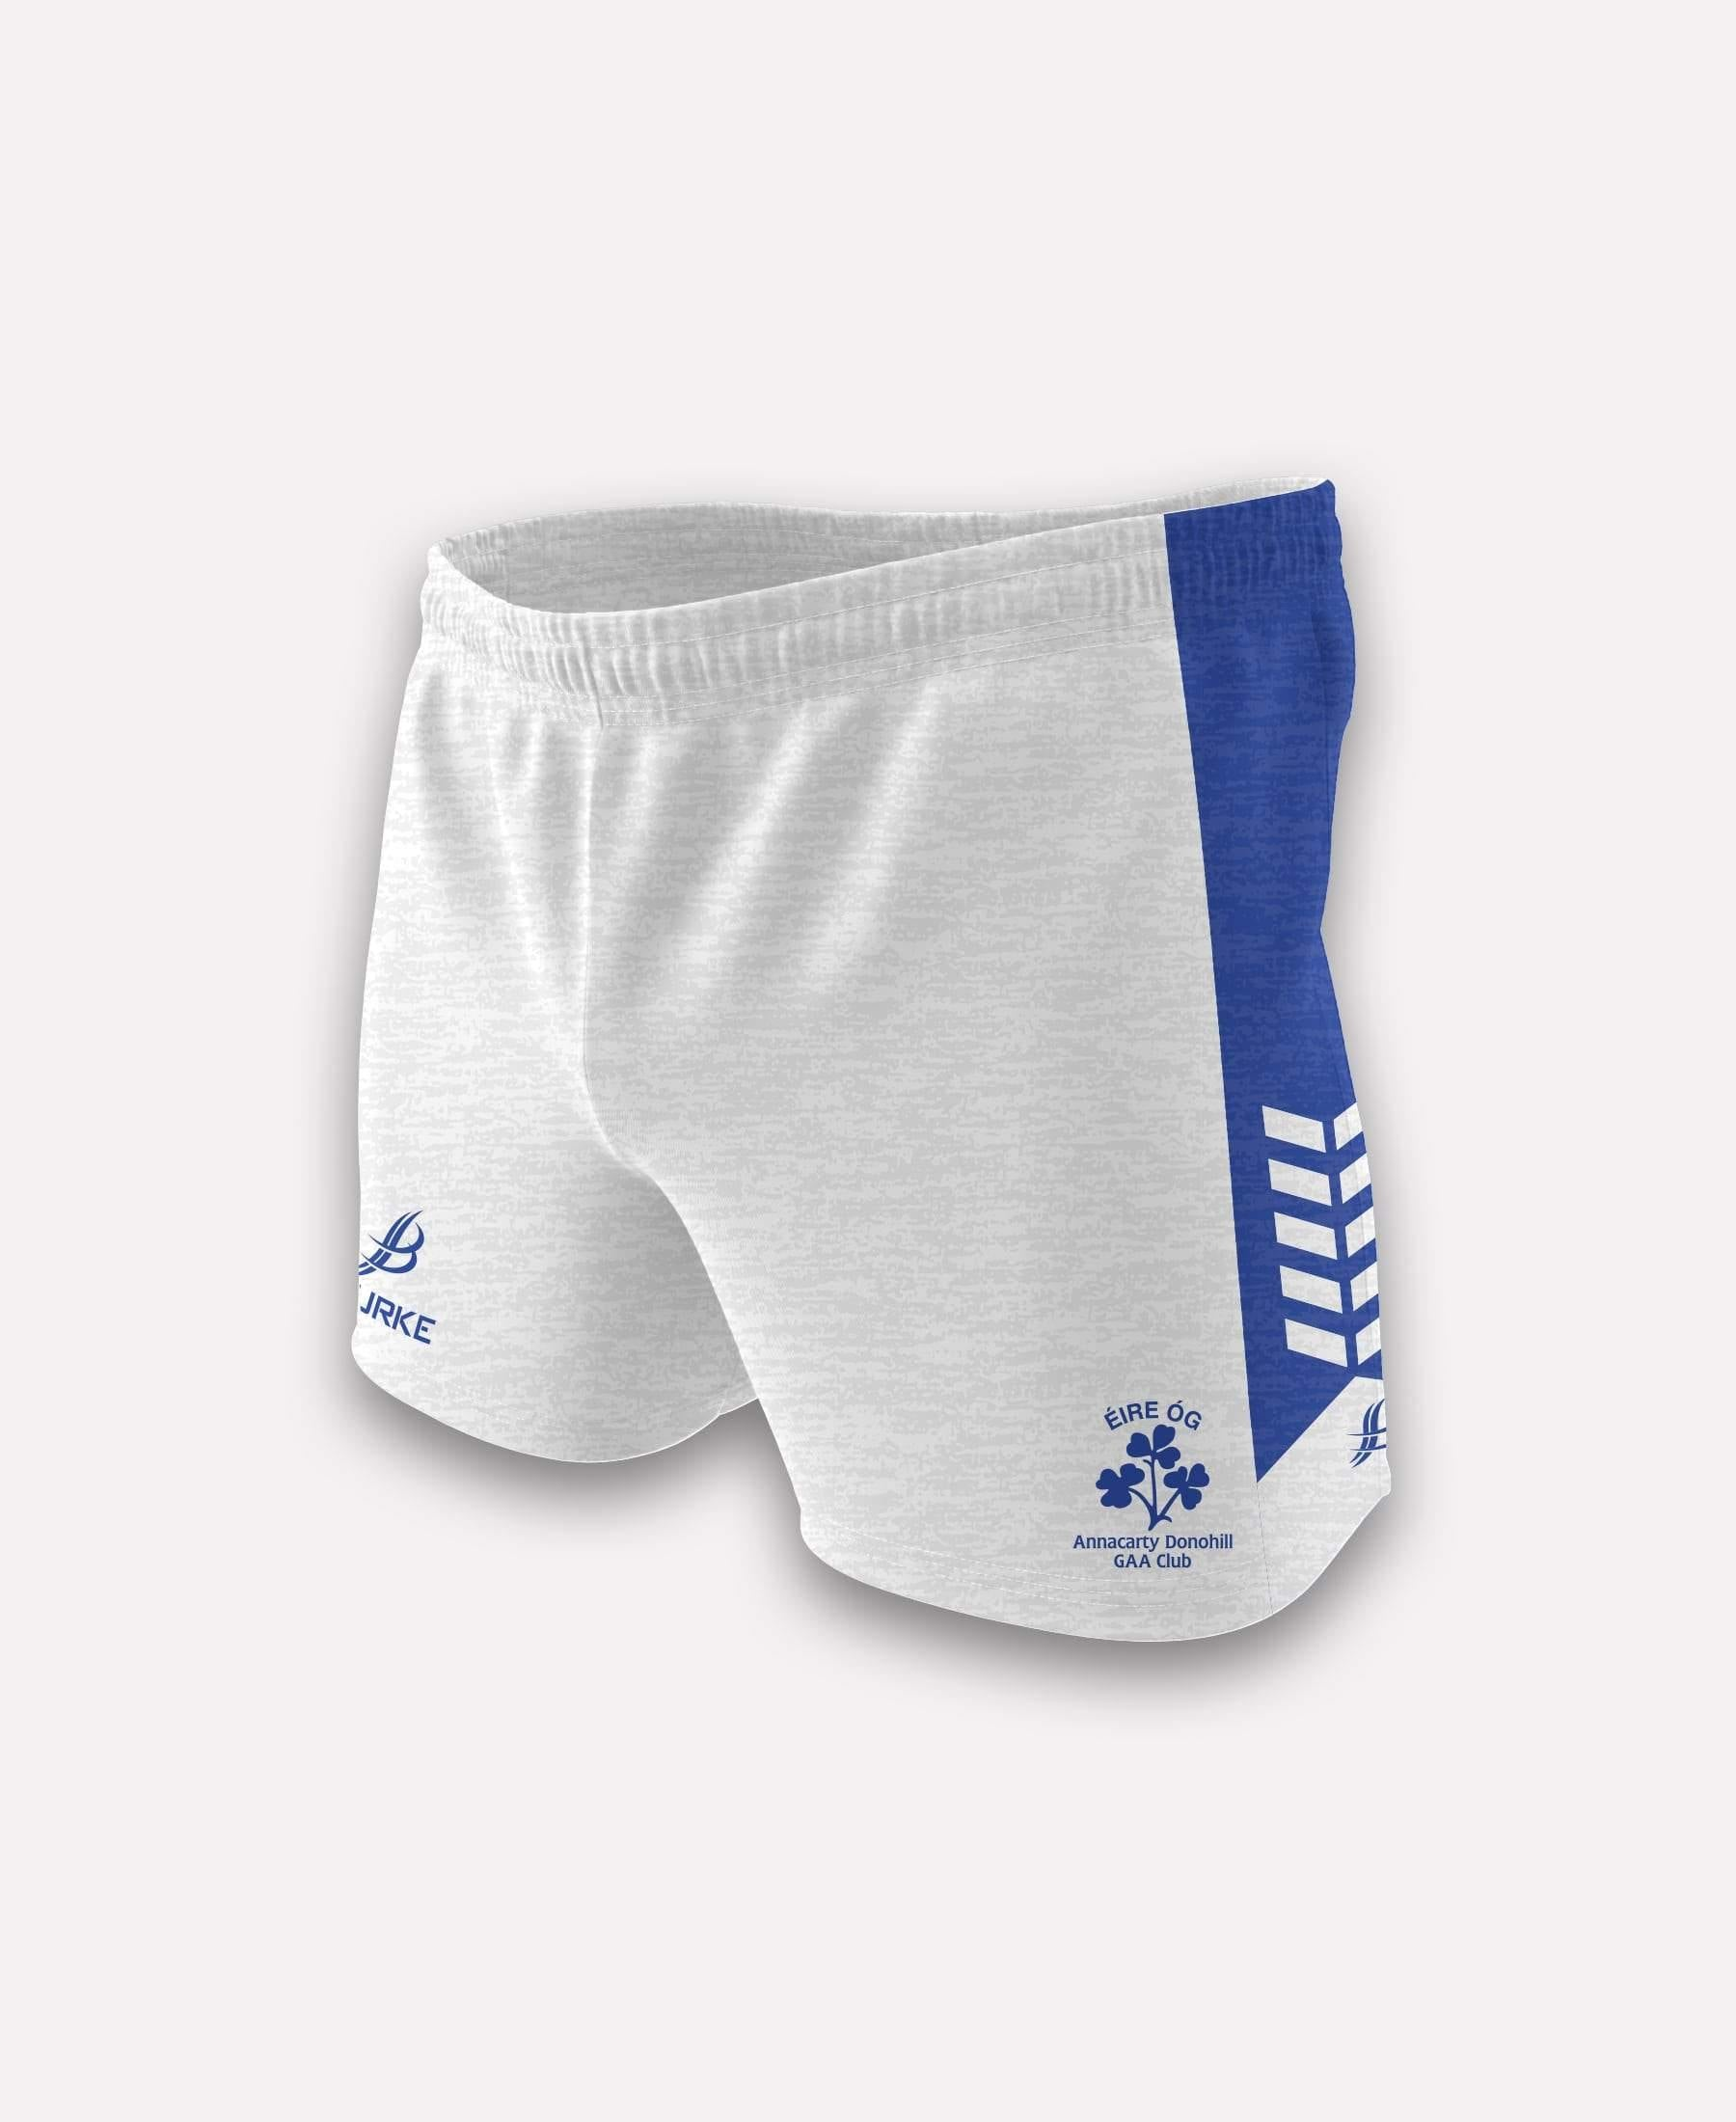 Eire Og Annacarty Donohill GAA Shorts - Bourke Sports Limited